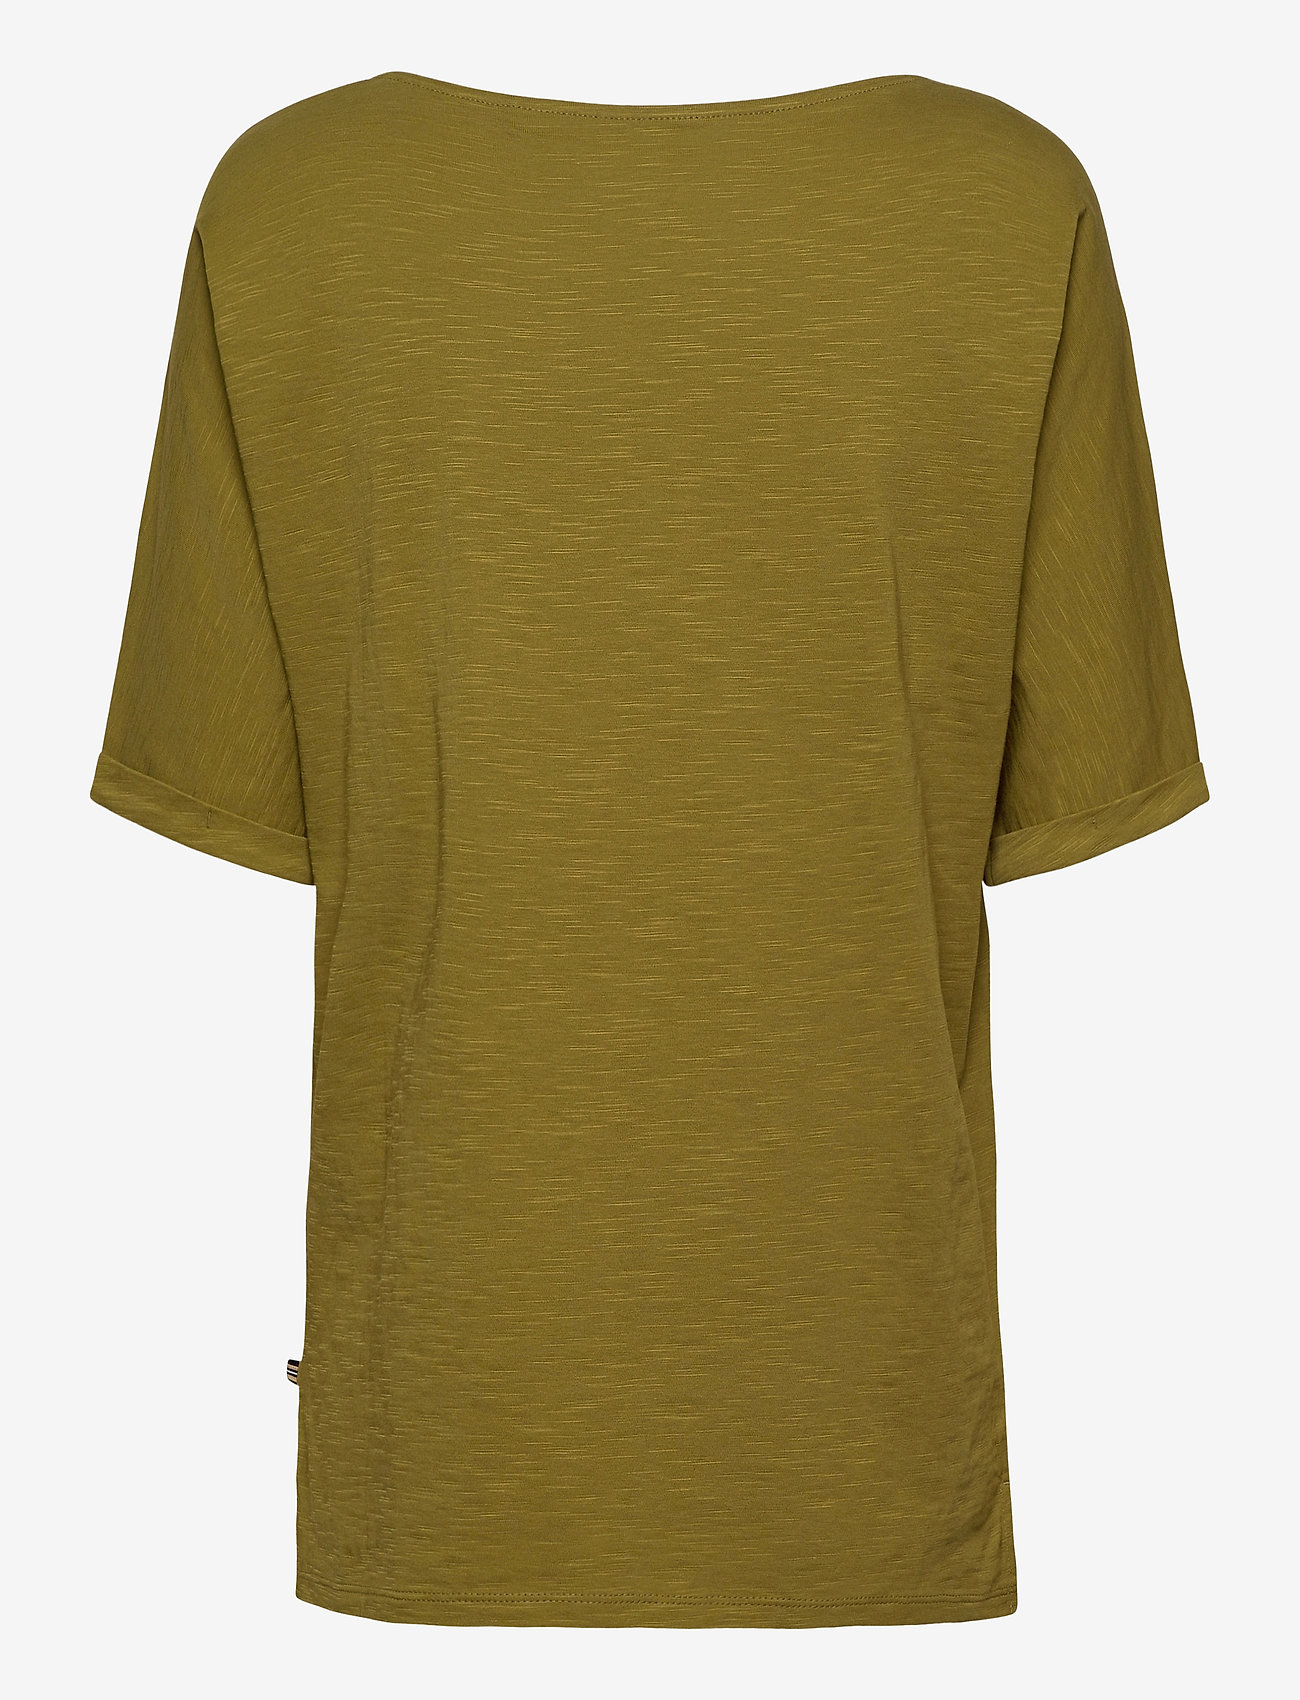 Esprit Casual - T-Shirts - t-shirts - olive - 1